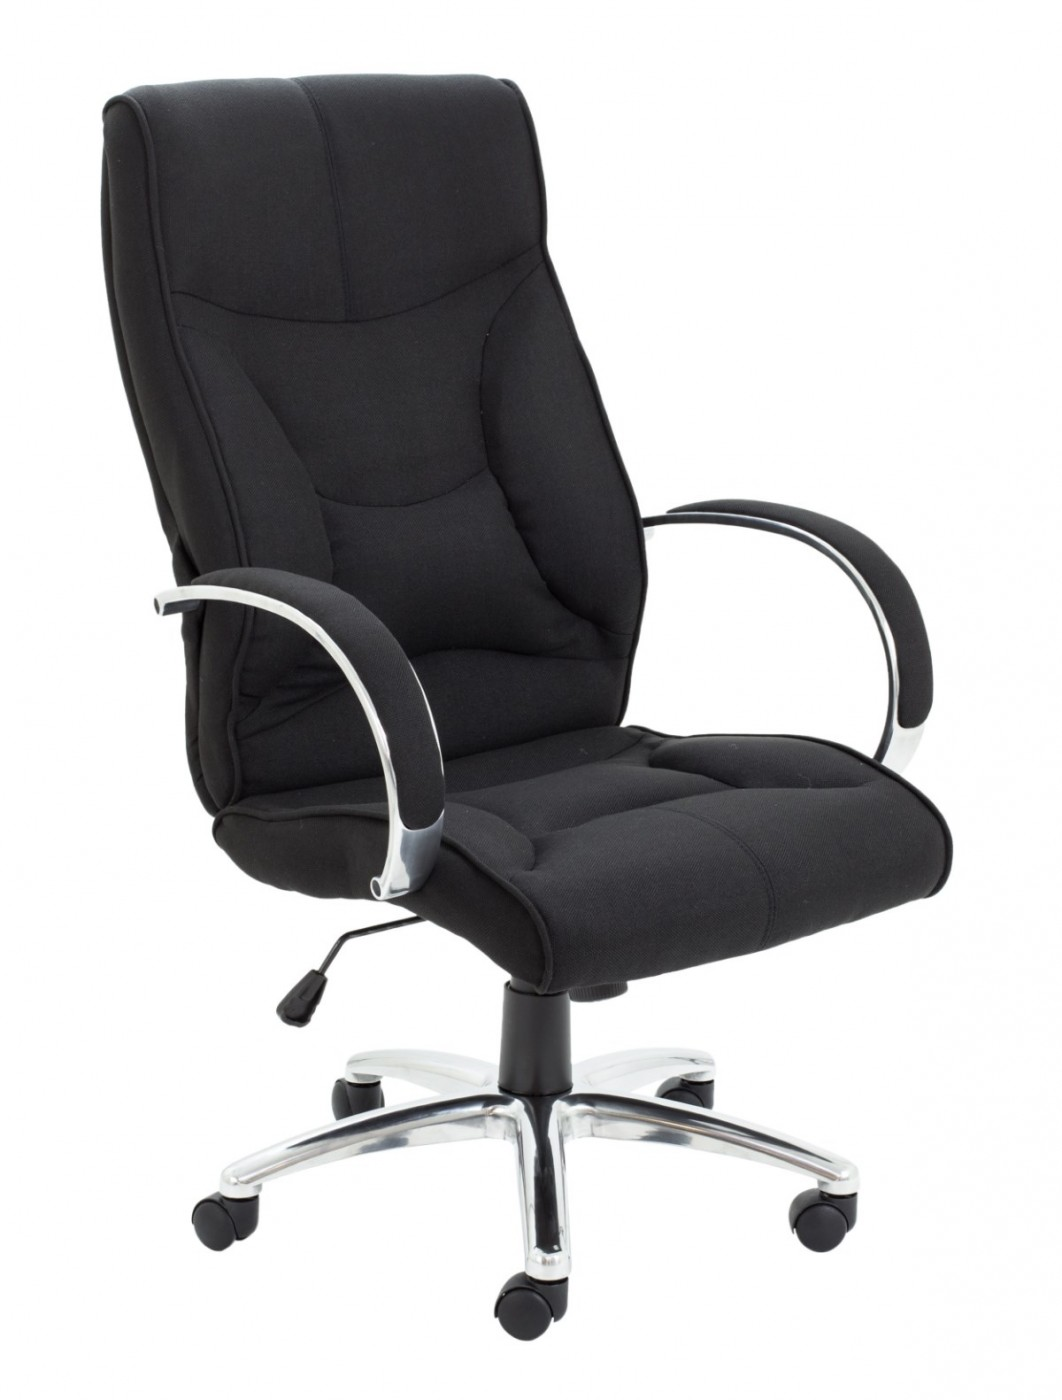 Office Chairs - TC Whist Executive Fabric Office Chair ...